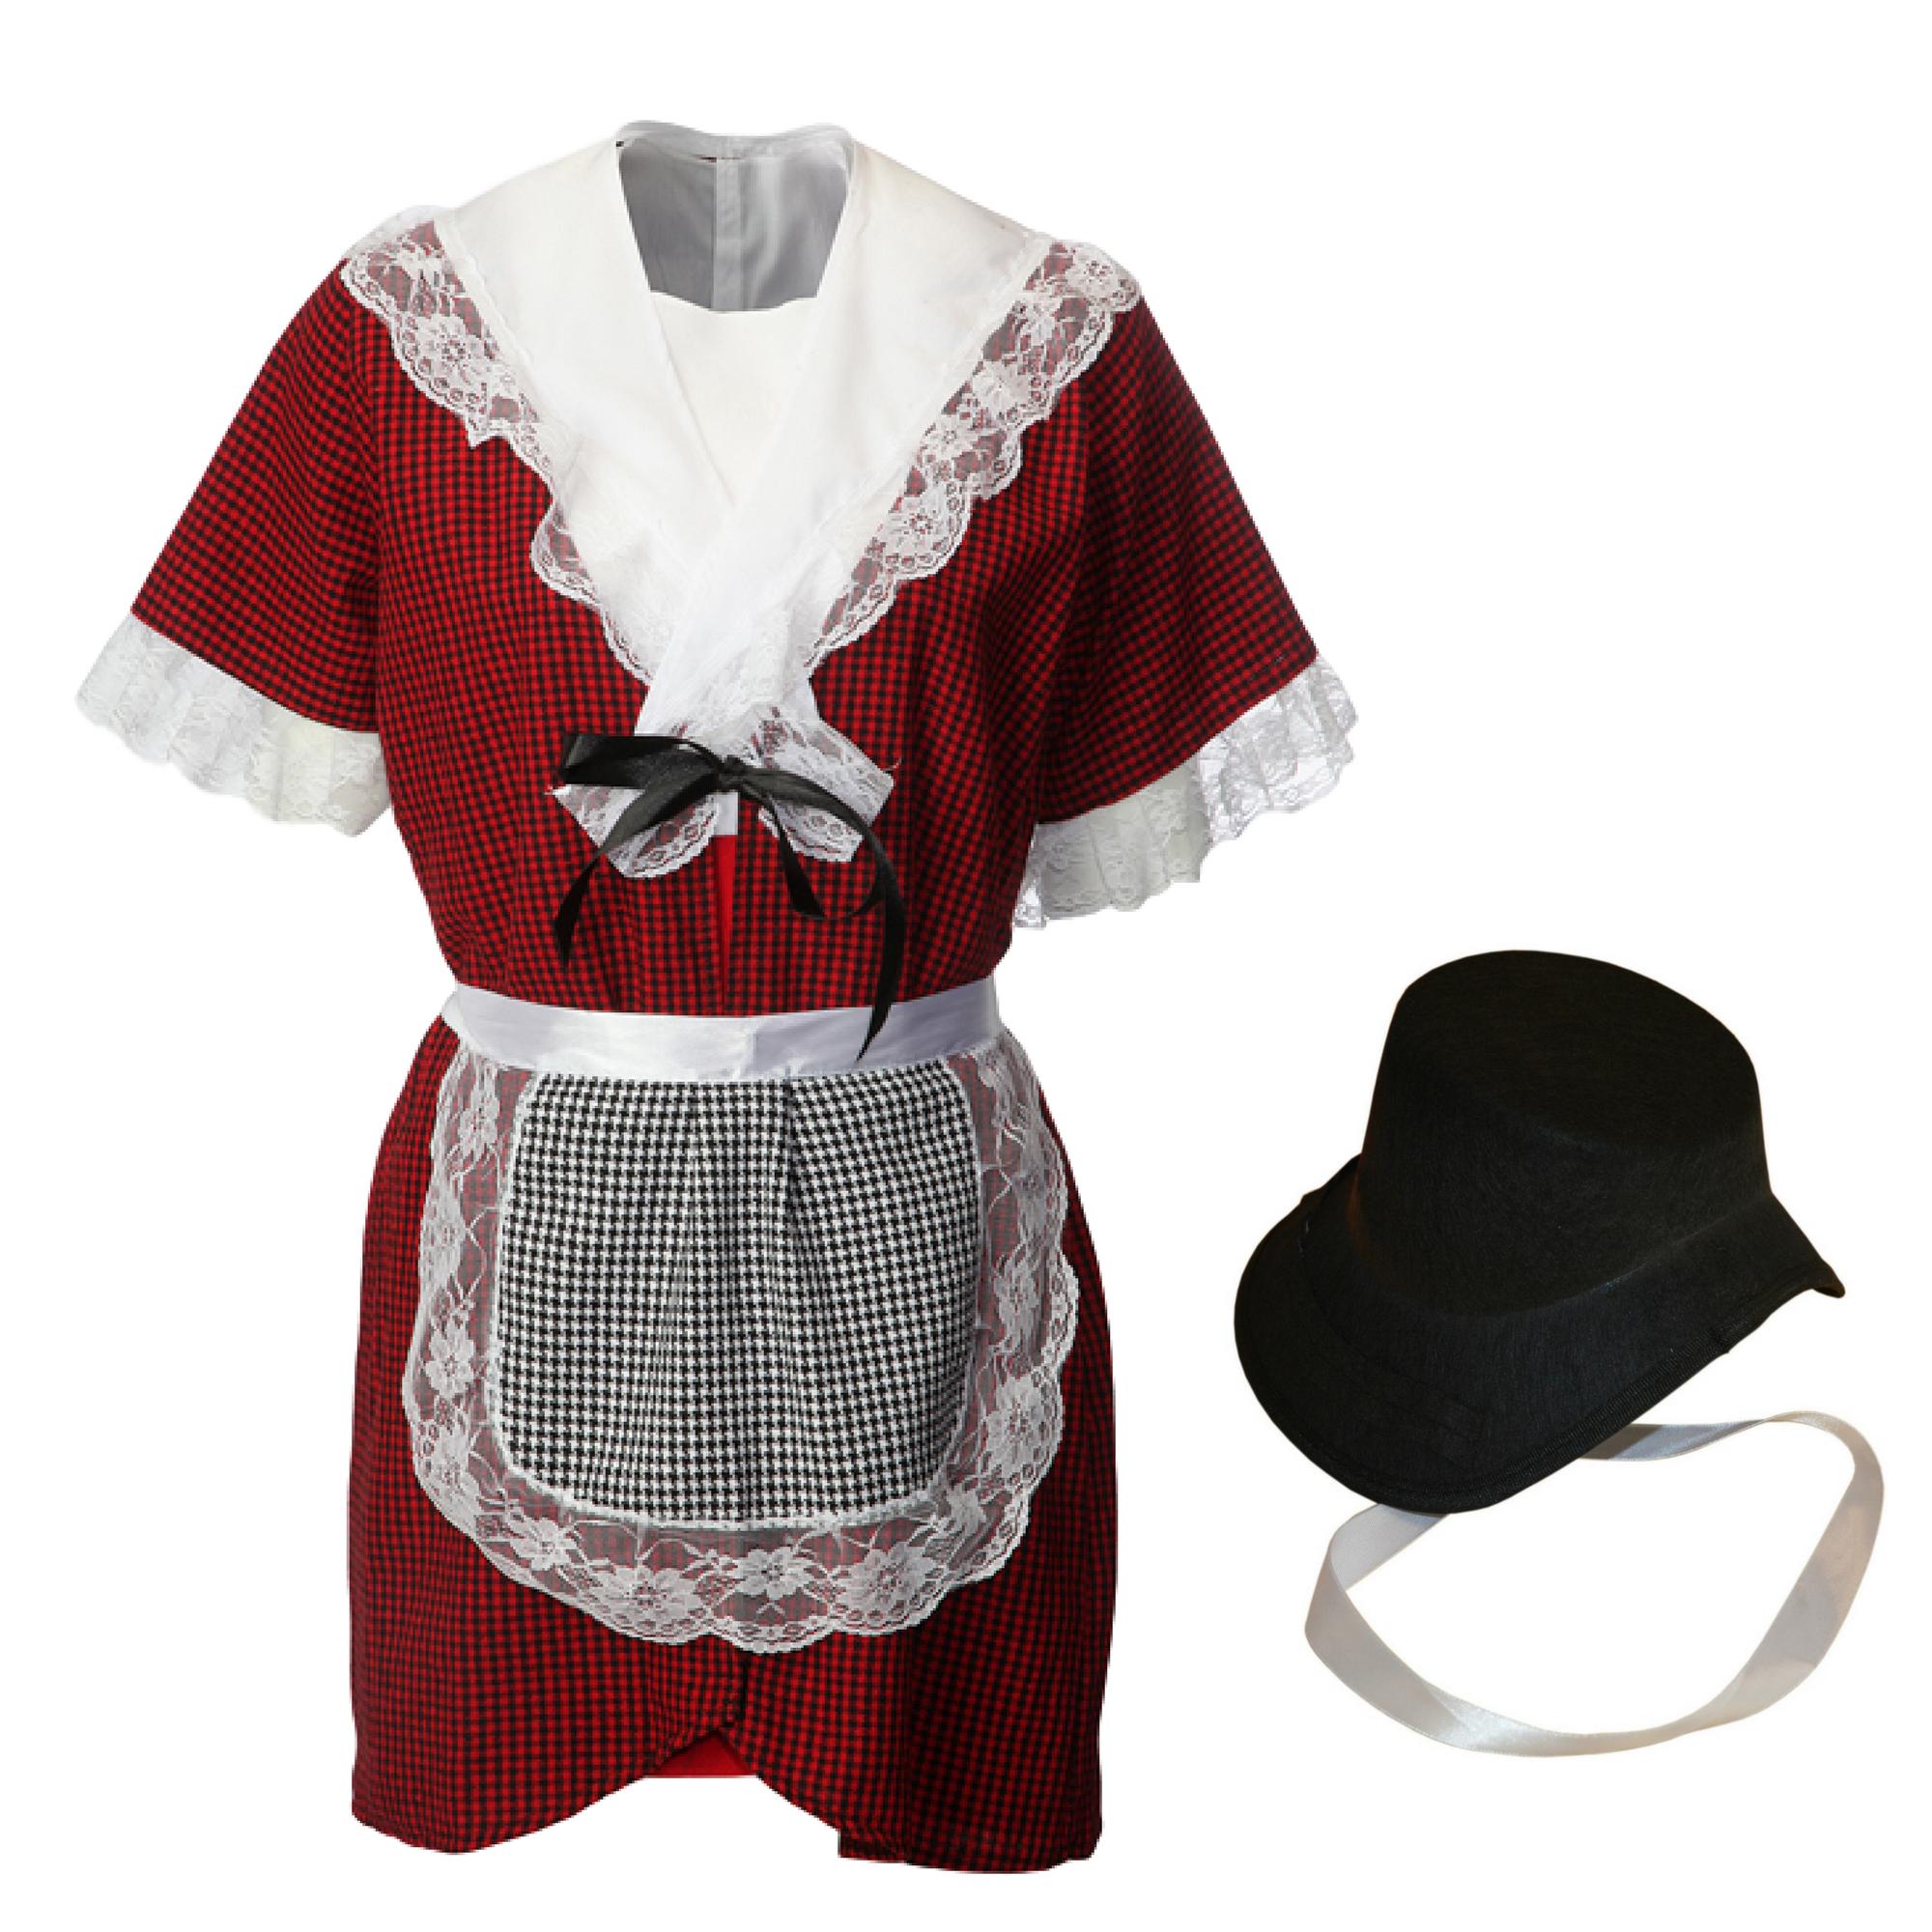 593852f78 Girls Traditional Welsh Costume & Cockle Bonnet ...